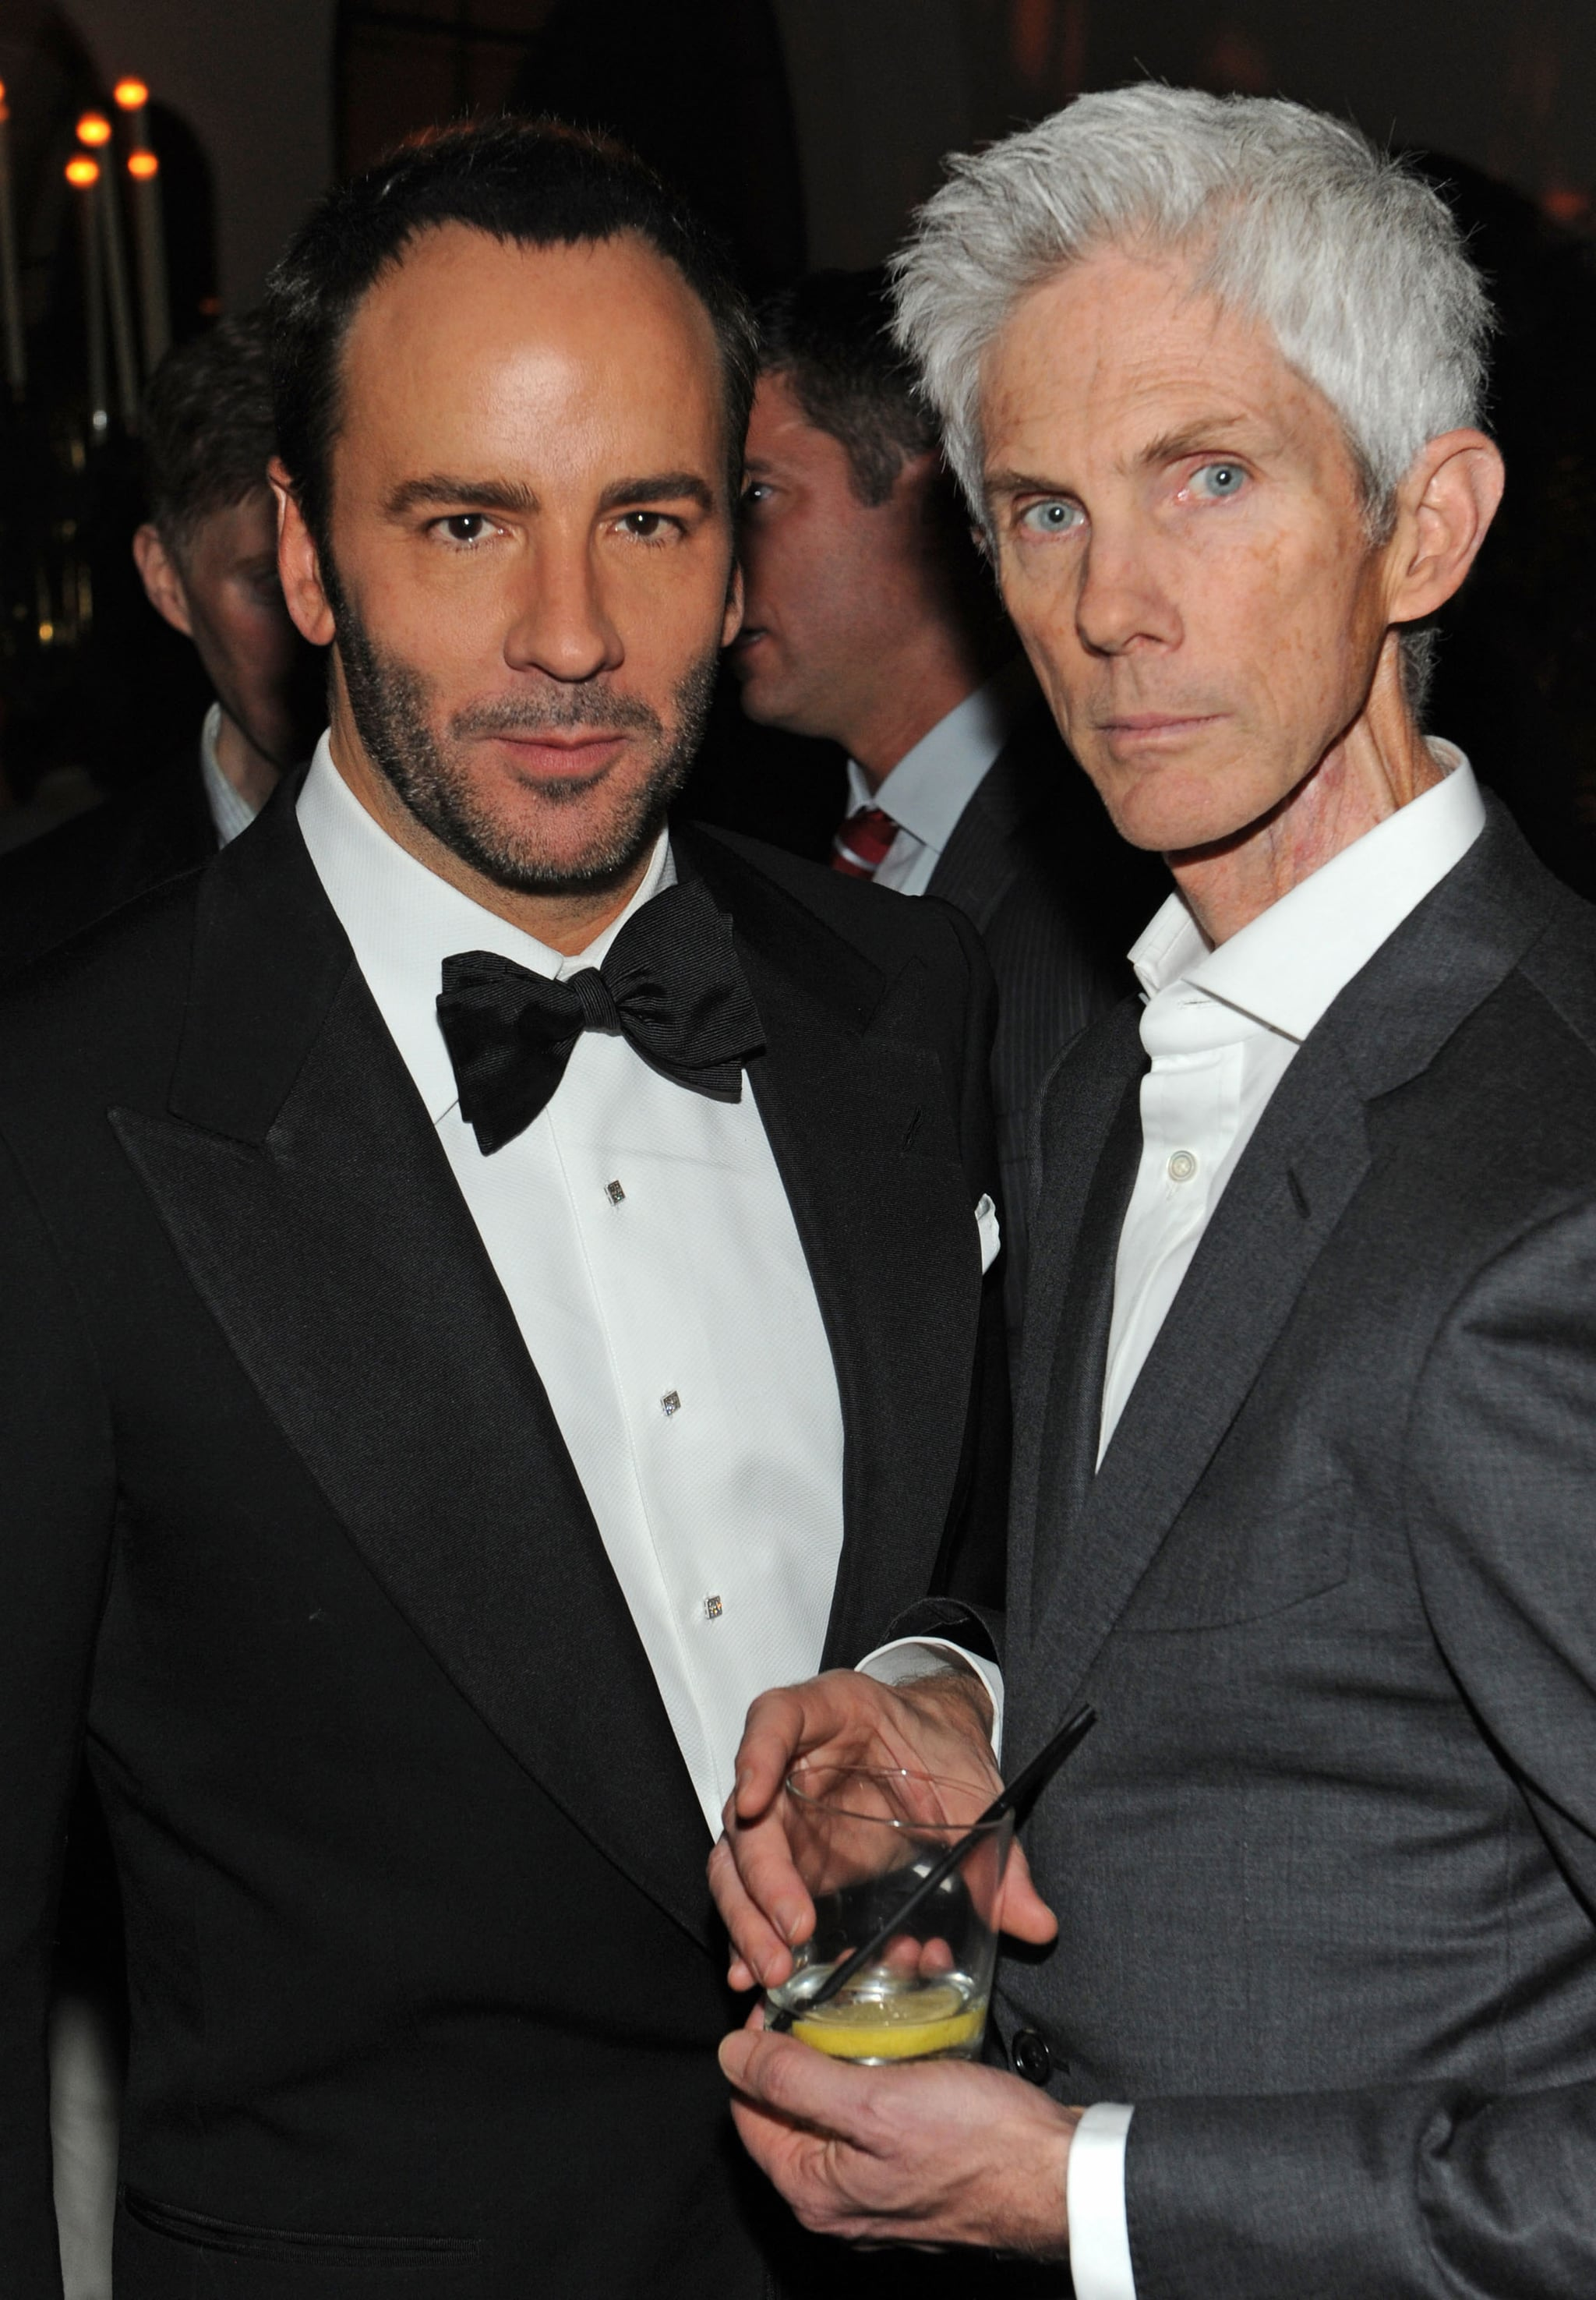 Tom Ford and Richard Buckley | Hollywood Couples Who Have Been Together the Longest | POPSUGAR Celebrity Photo 23